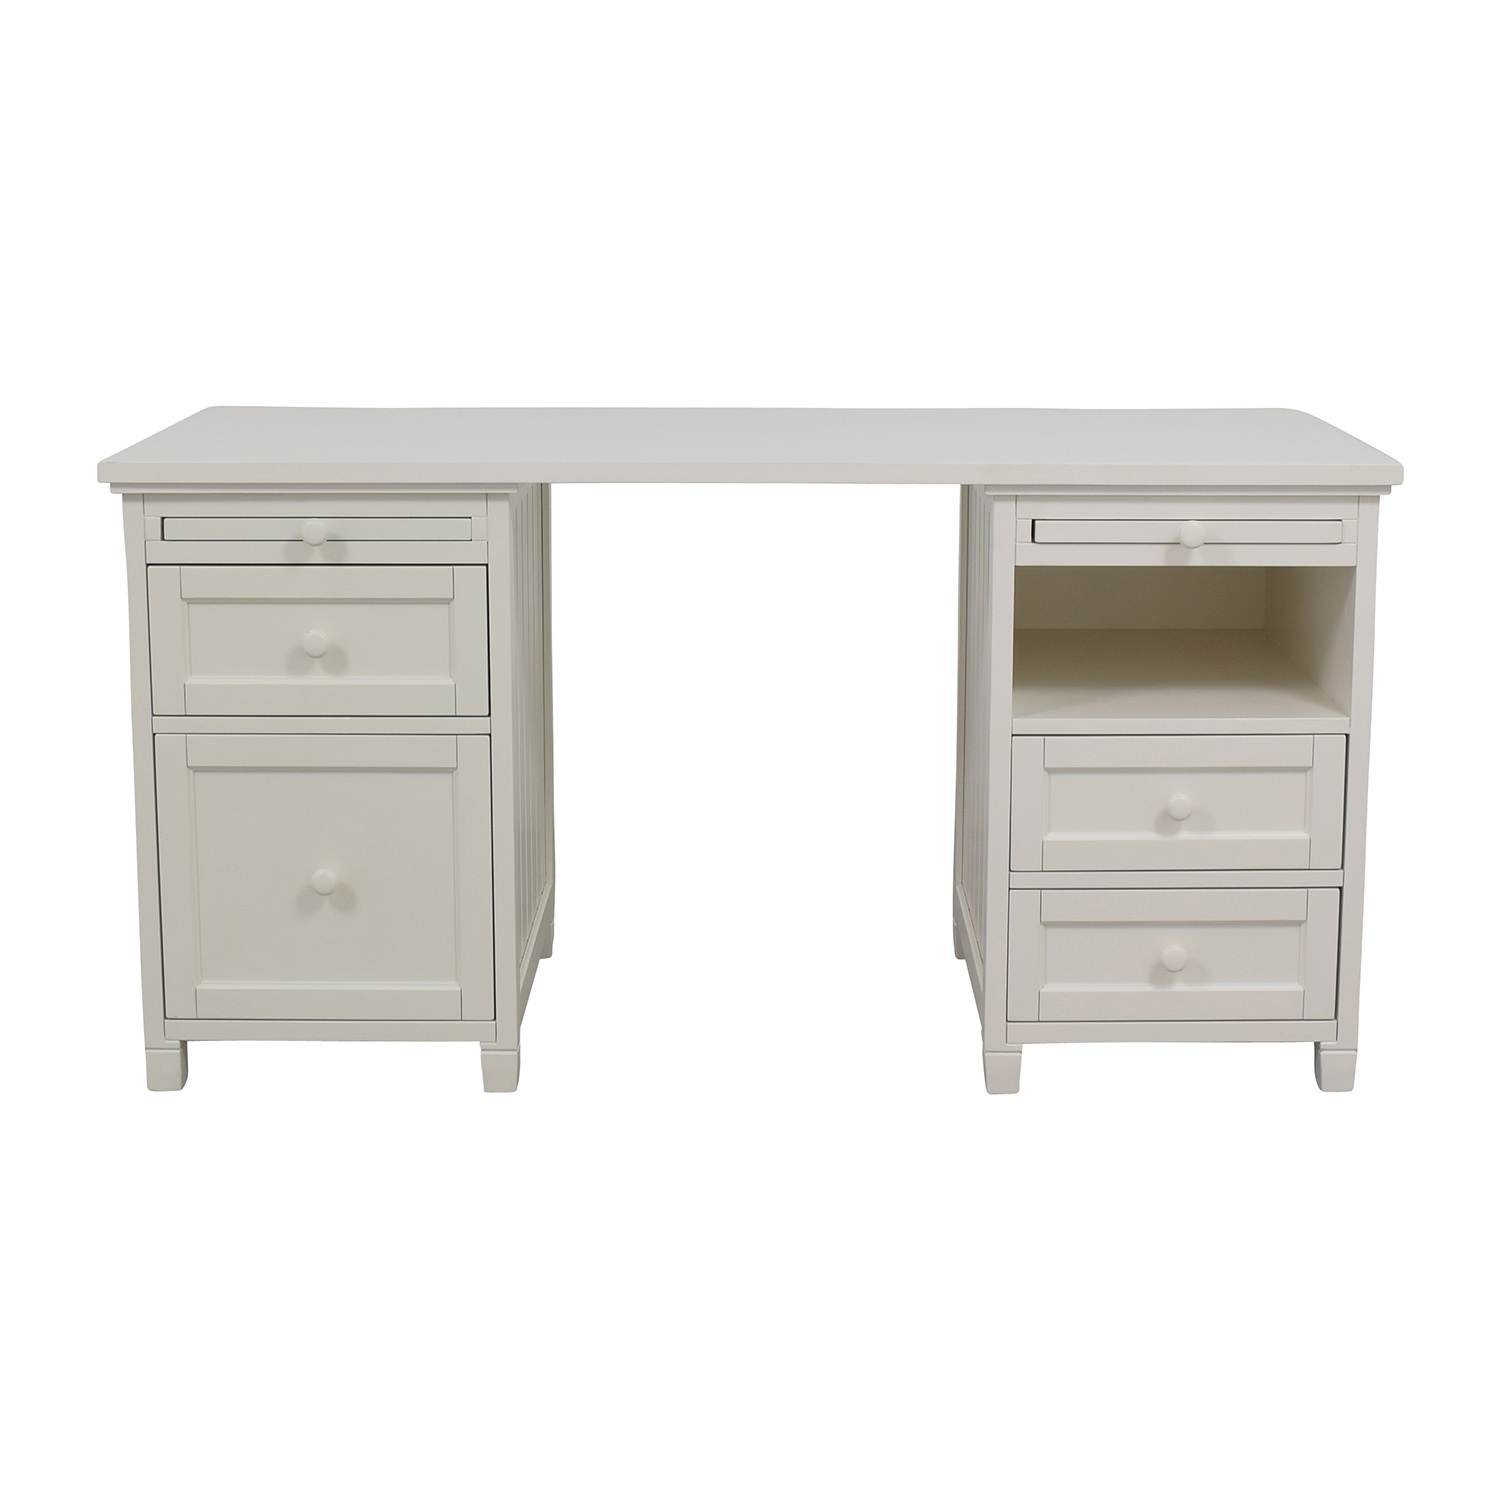 buy Pottery Barn Pottery Barn Off-White Four-Drawer Desk online